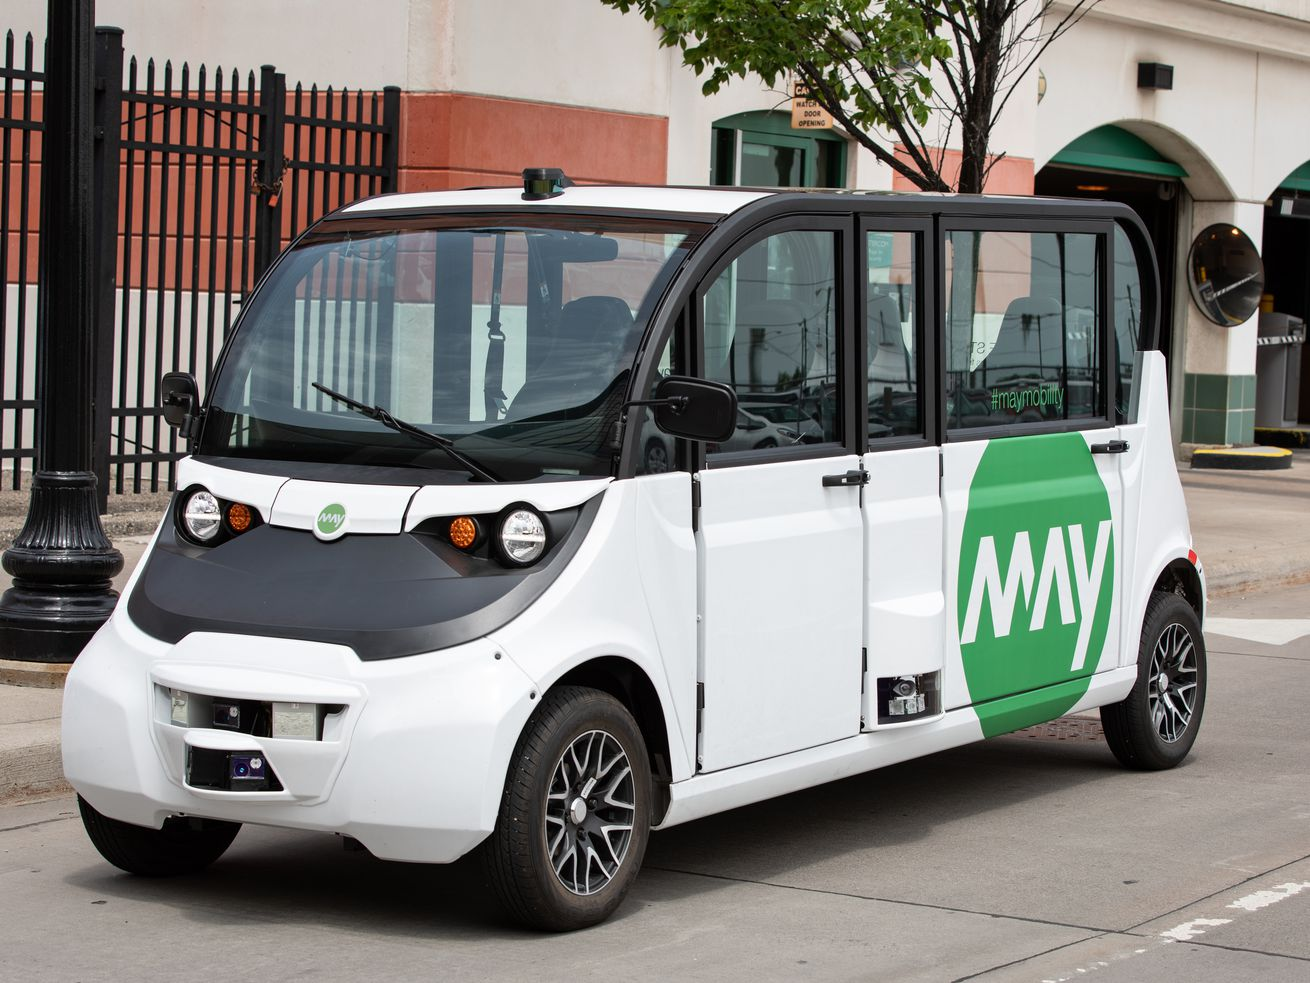 One of the May Mobility shuttles, currently running a test in downtown Detroit.